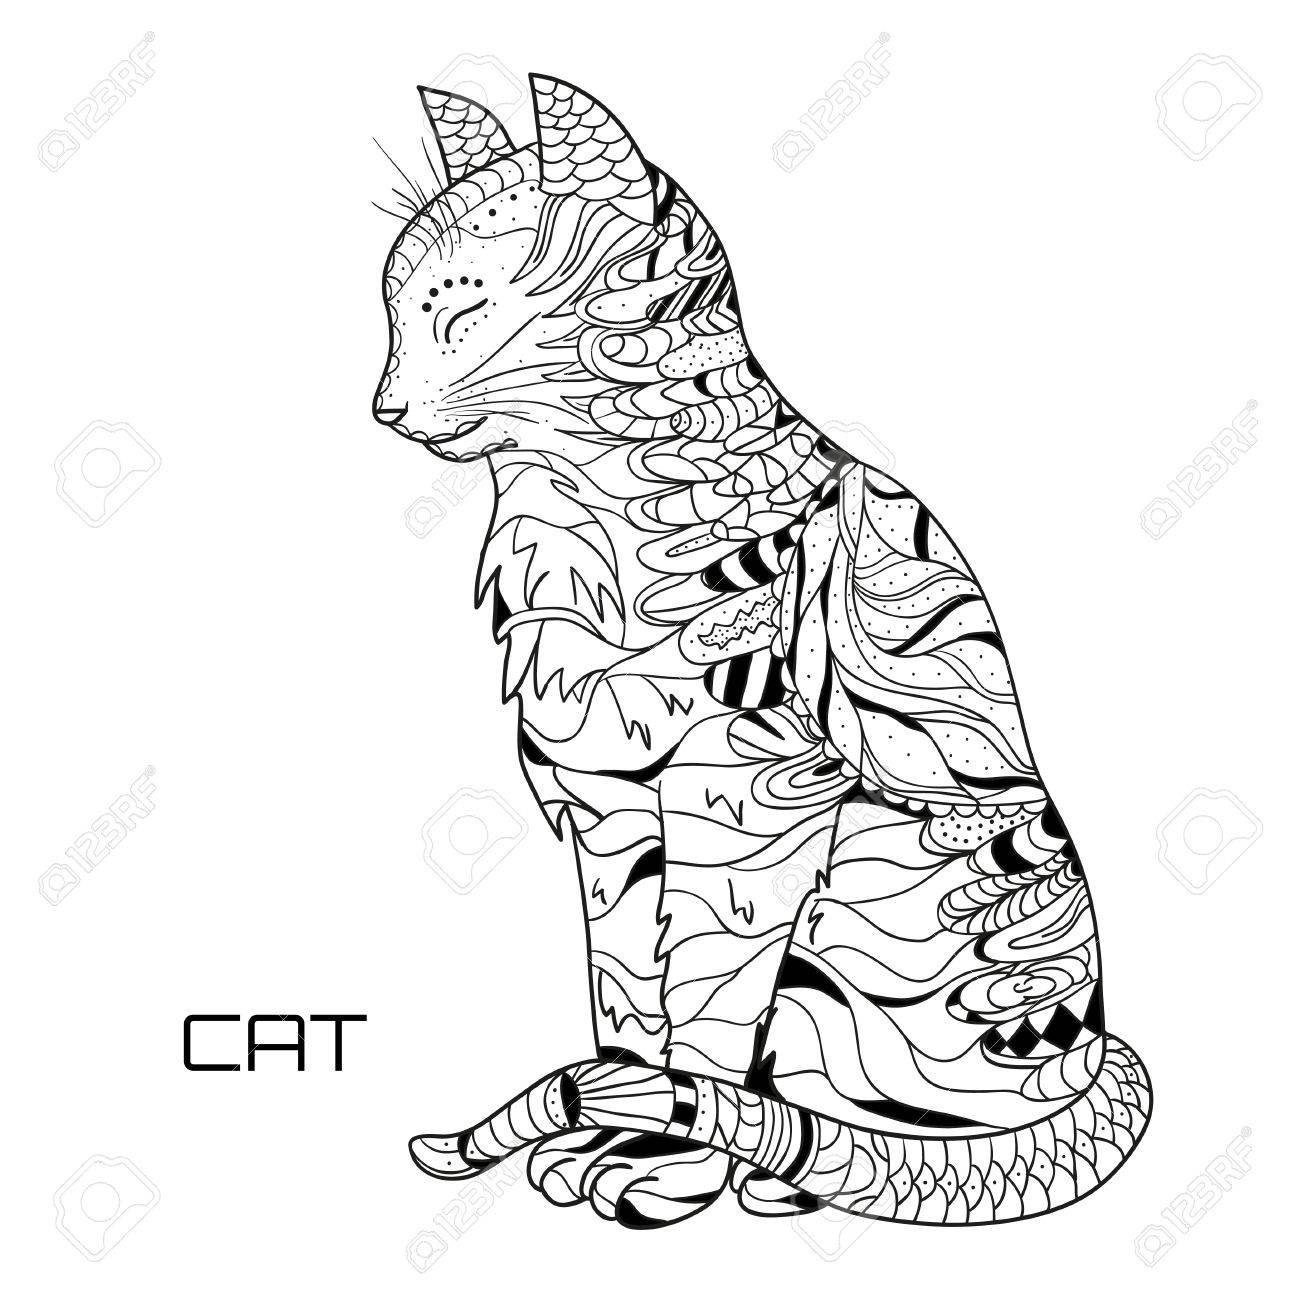 Cat. Zentangle. Hand drawn cat with abstract patterns on isolation background. Design for spiritual relaxation for adults. Black and white illustration for coloring. Zen art. Outline for t-shirts - 84624025